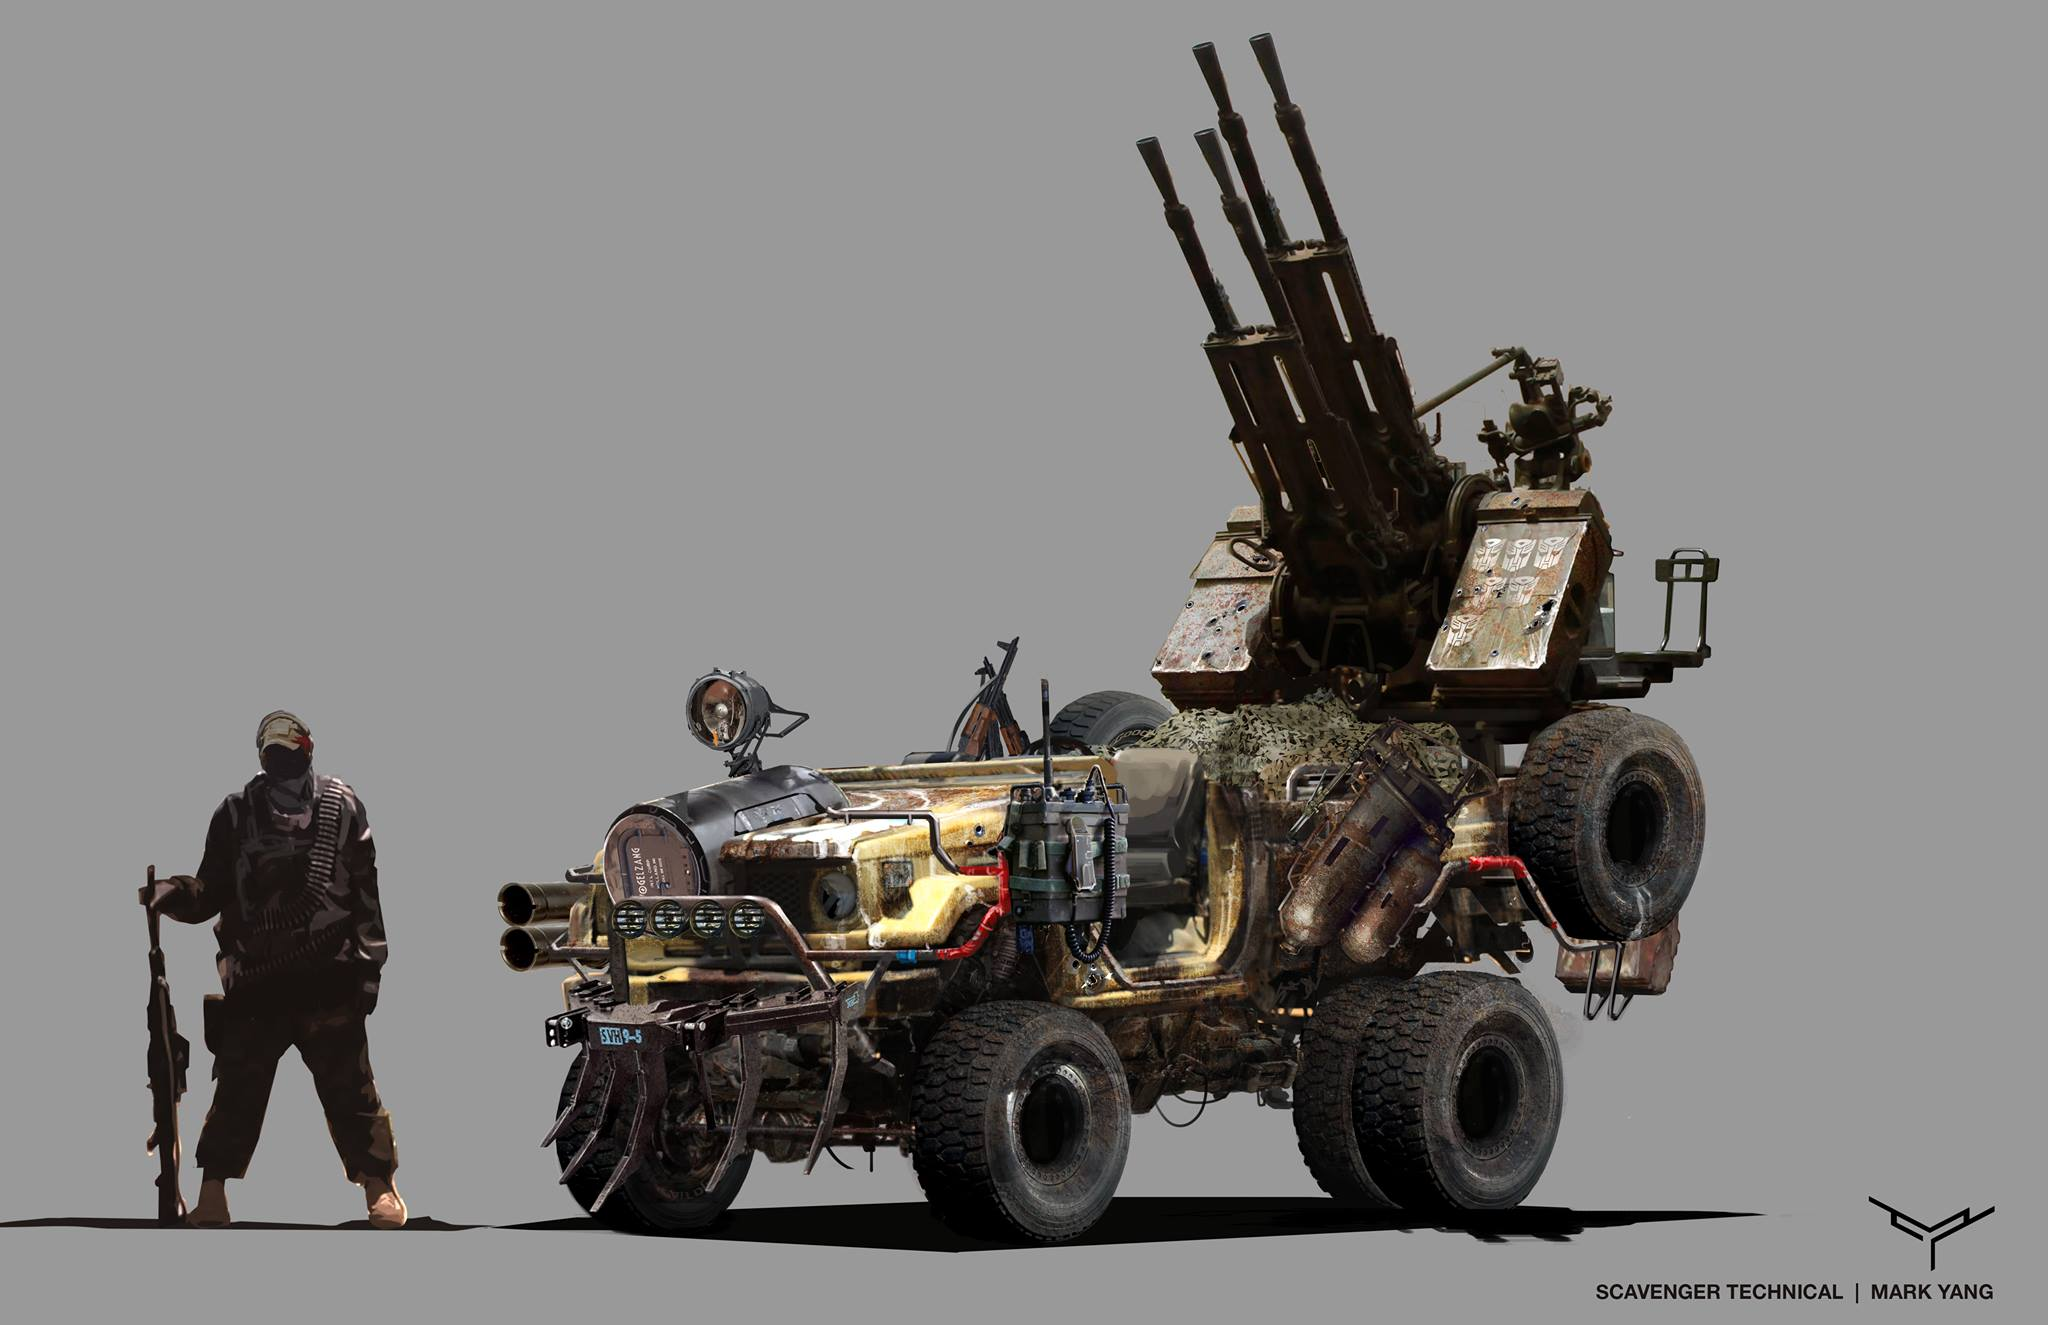 Transformers: The Last Knight Concept Art By Mark Yang - Bumblebee. Barricade. Optimus And More - Transformers News - TFW2005